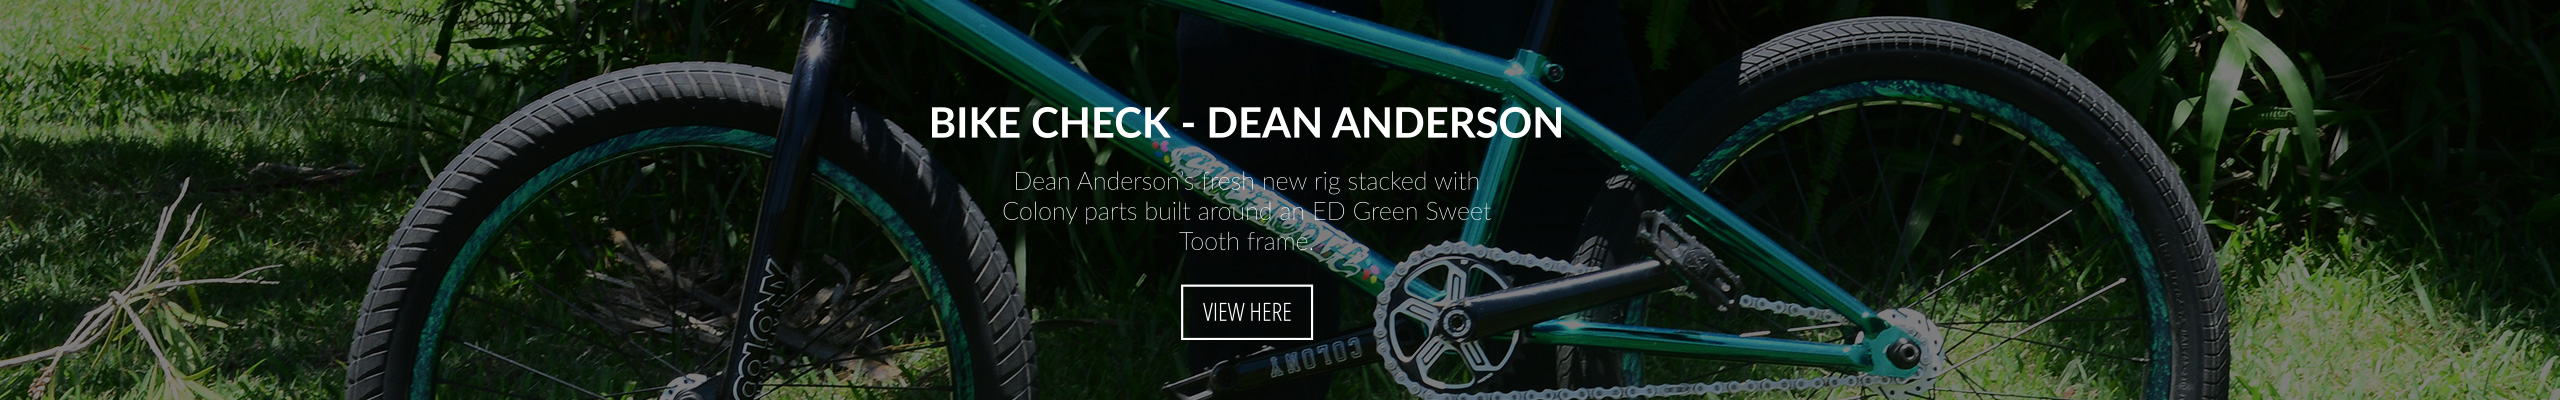 Bike Check - Dean Anderson